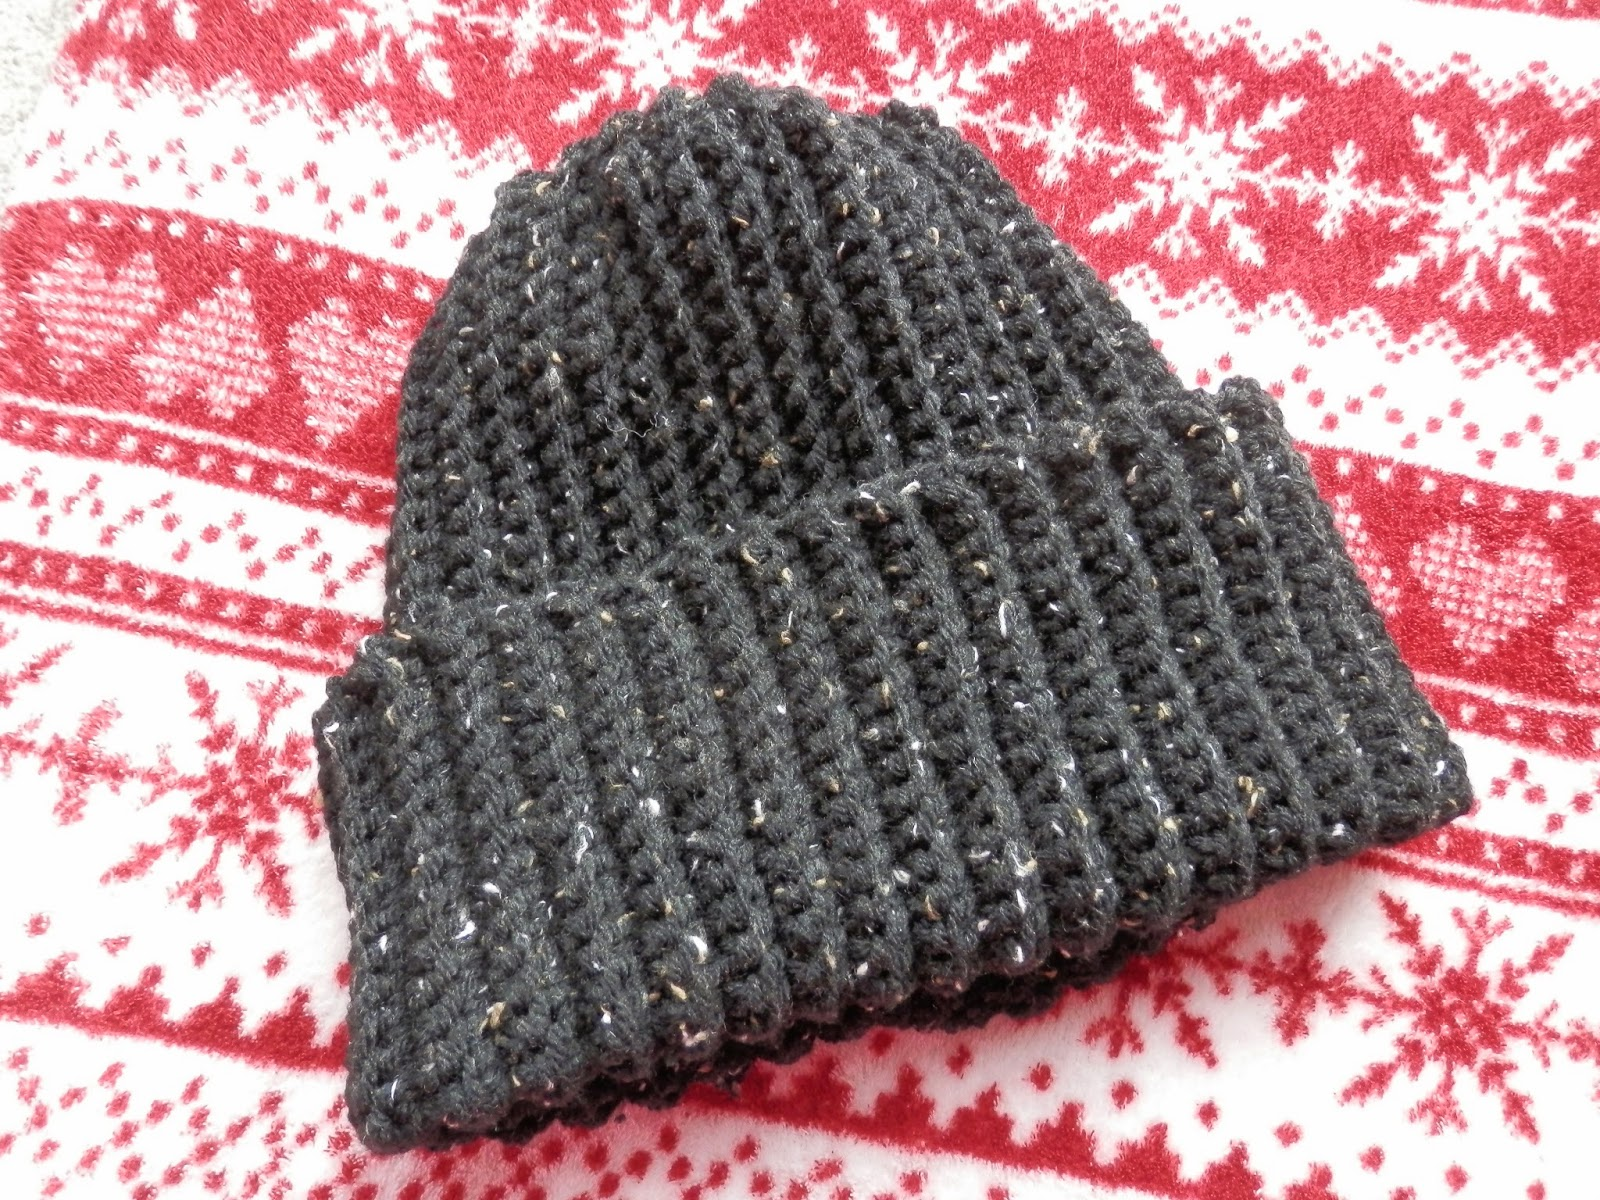 Mens ribbed crochet hat free pattern ravelry secondhandsusie.blogspot.co.uk